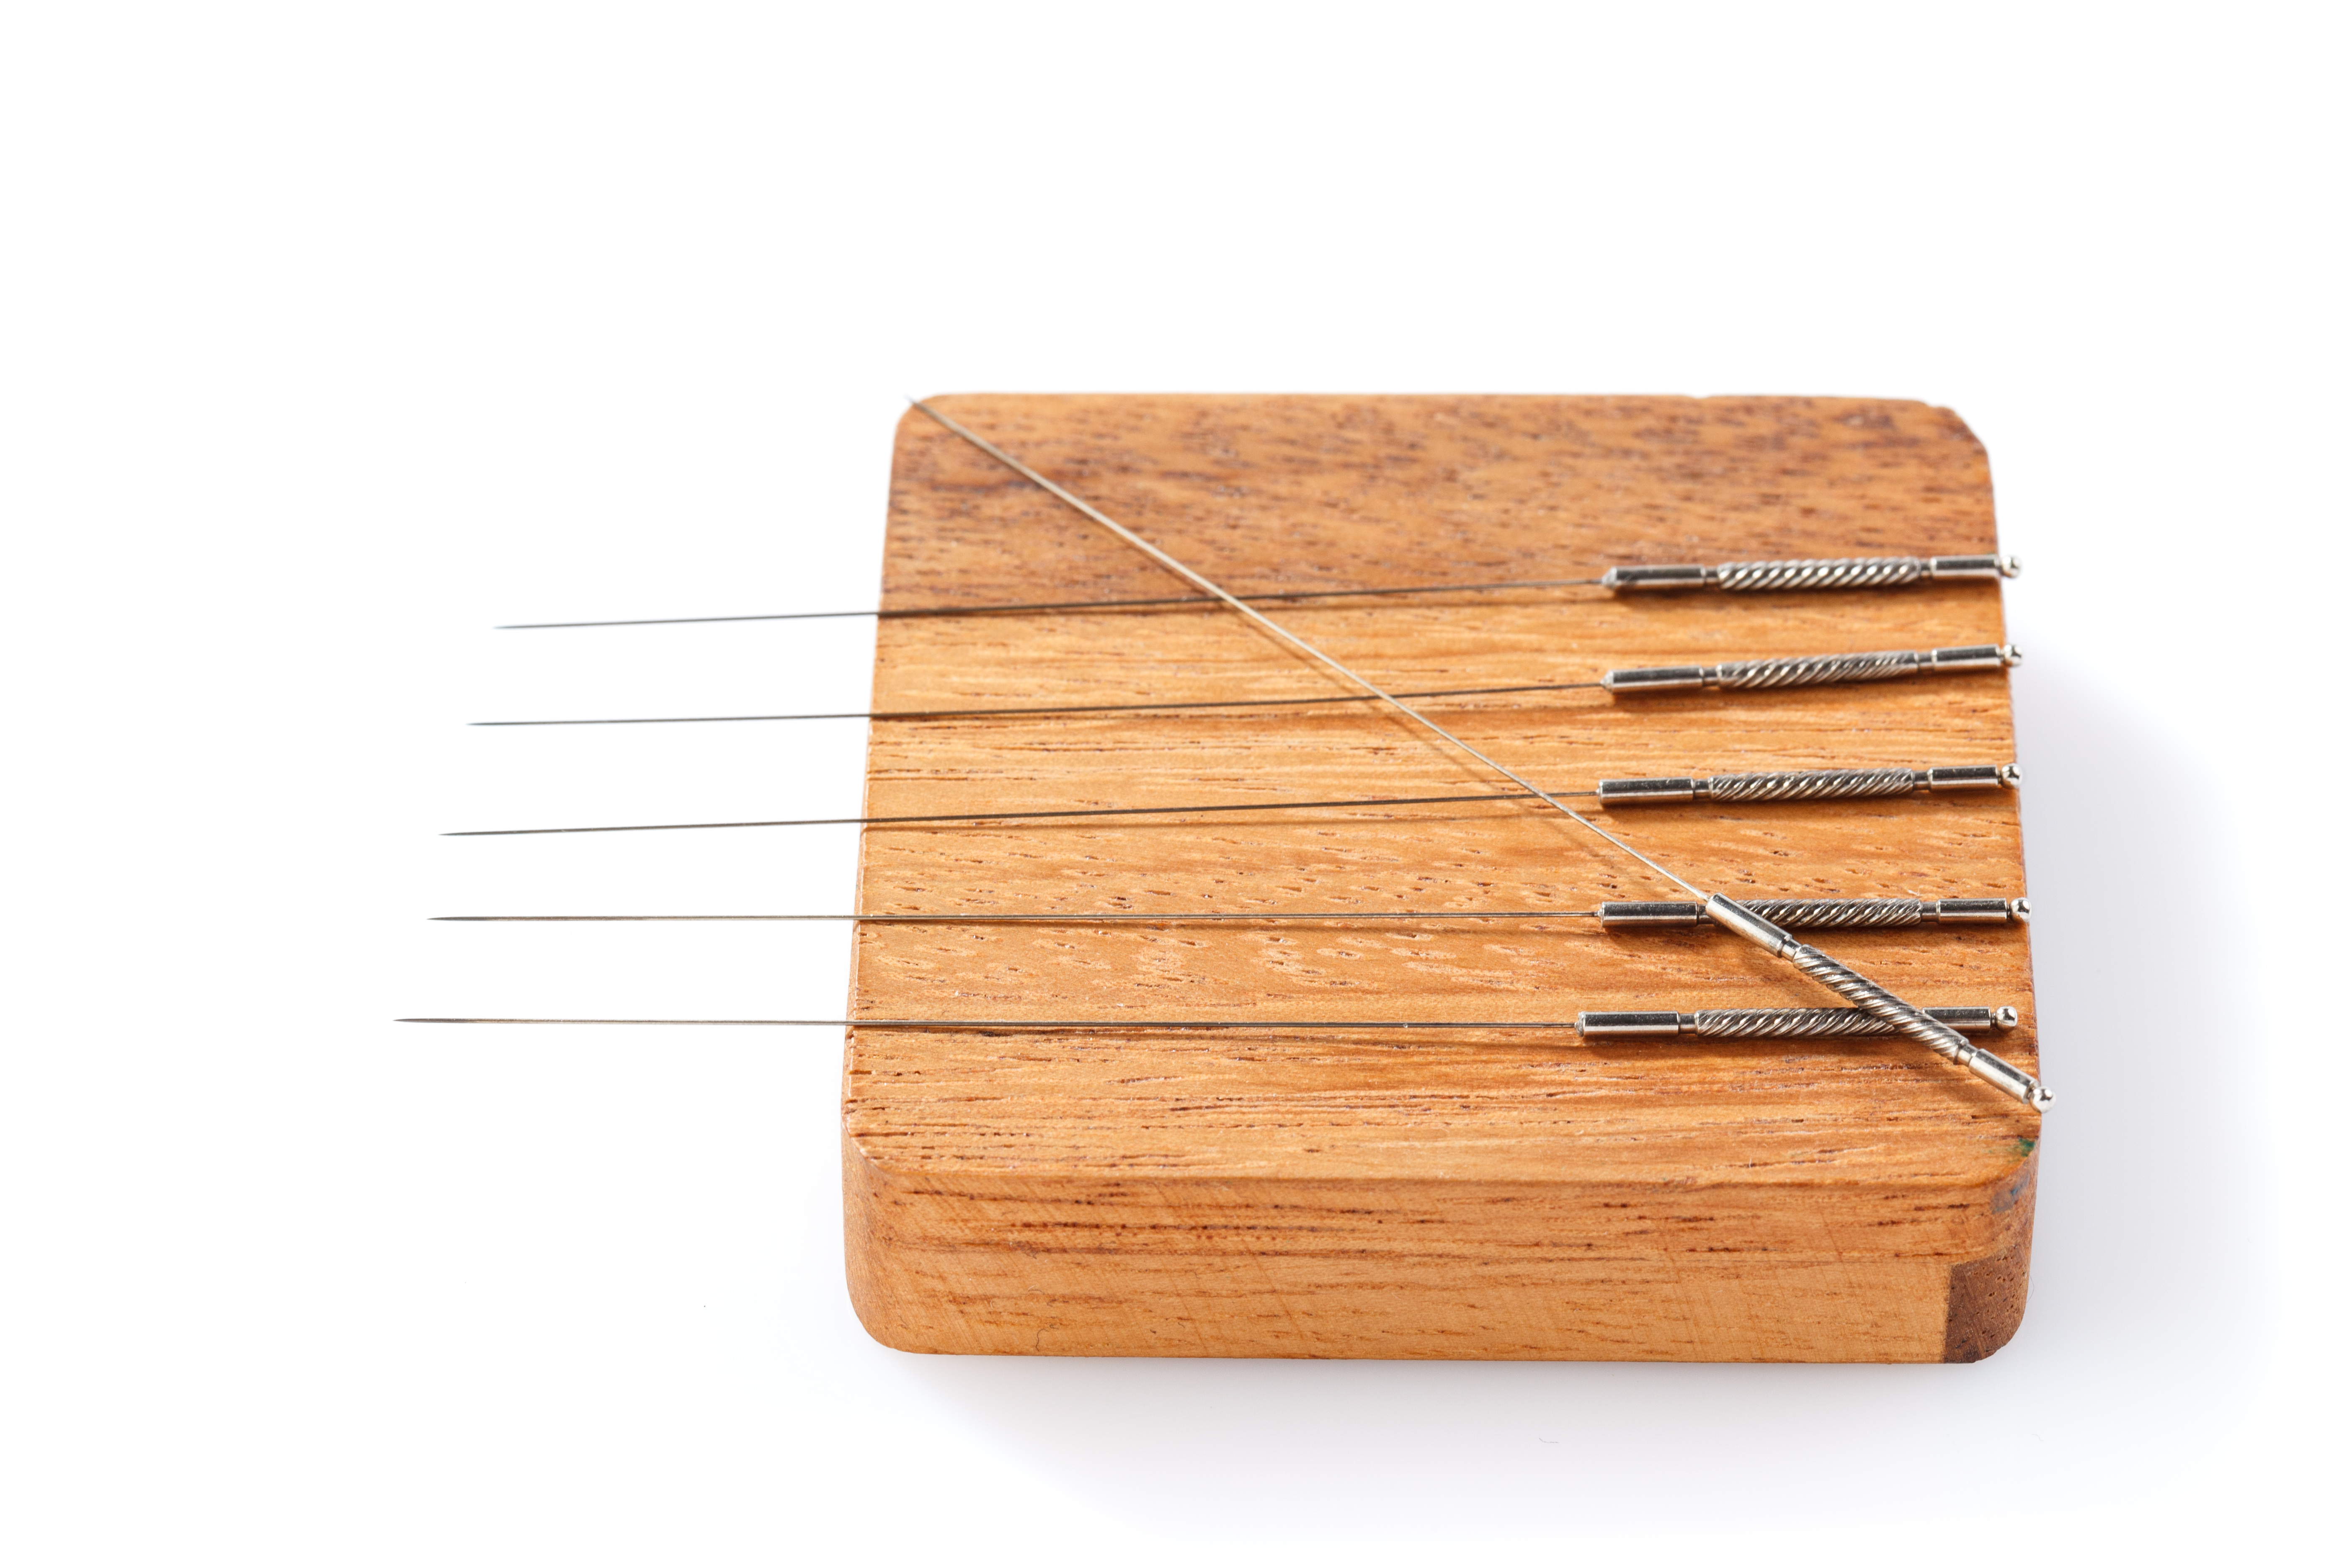 Acupuncture silver needle